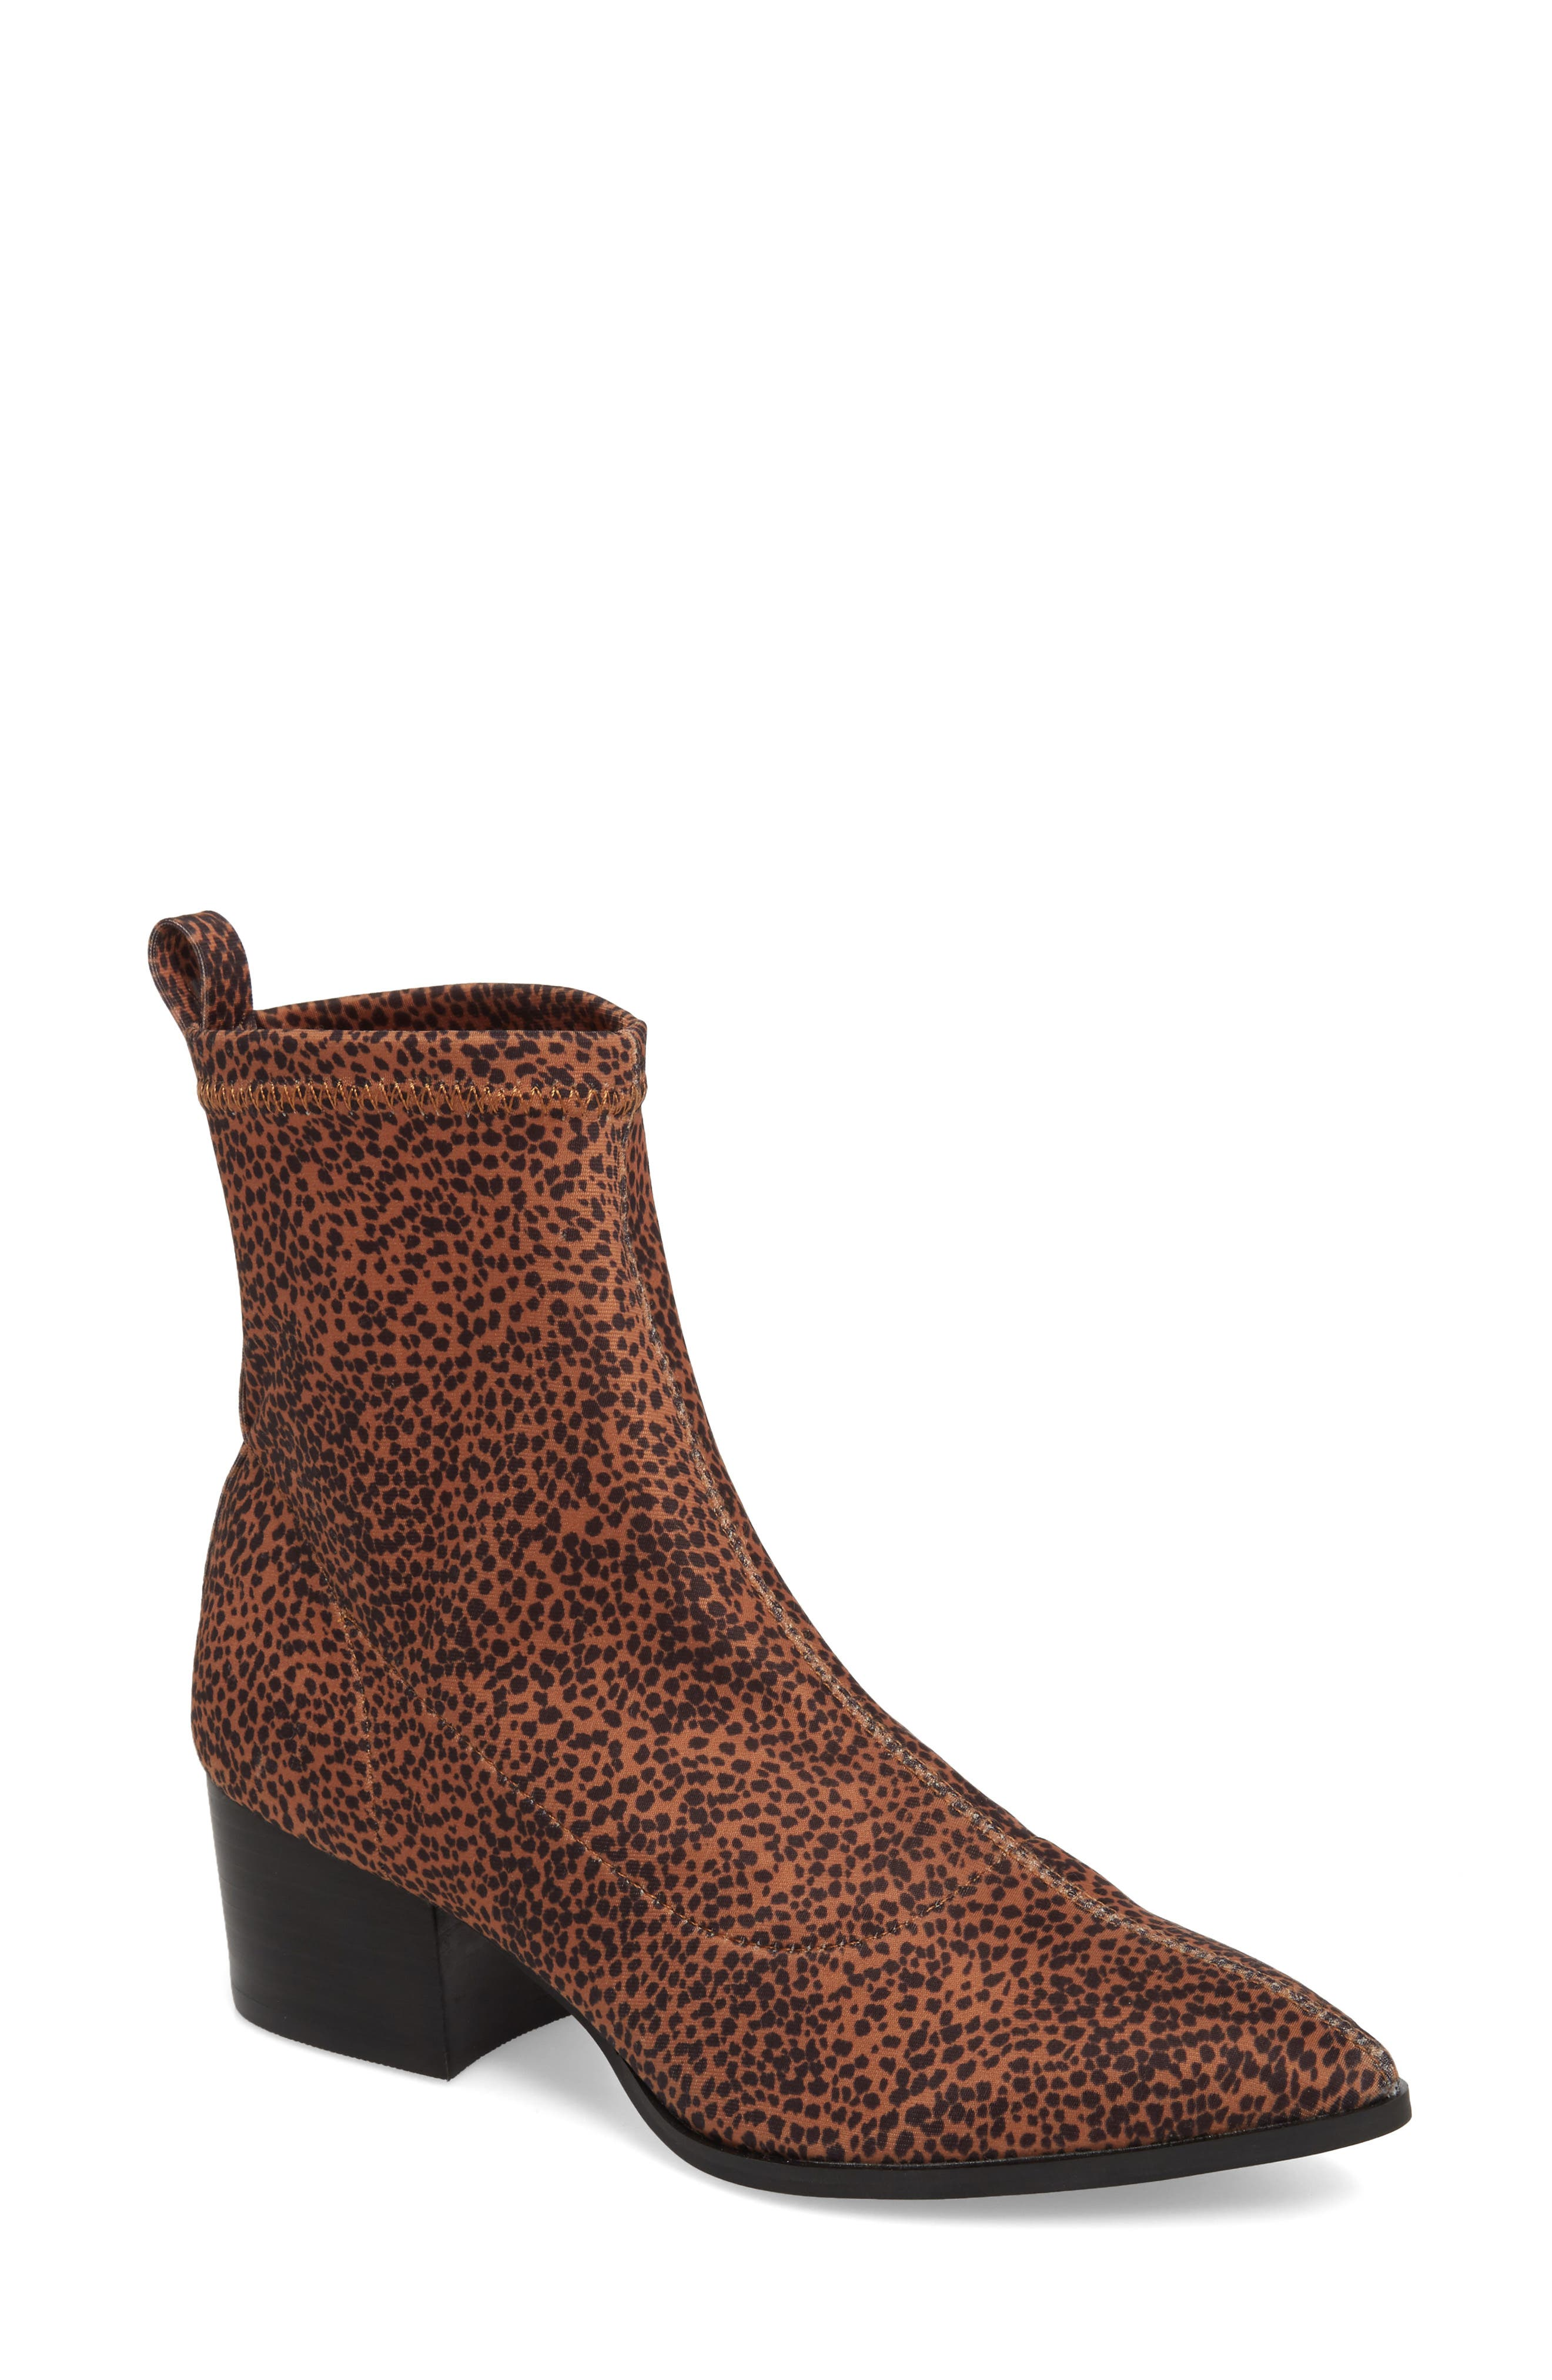 Amuse Society x Matisse Liliana Sock Bootie,                             Main thumbnail 1, color,                             Brown Stretch Fabric